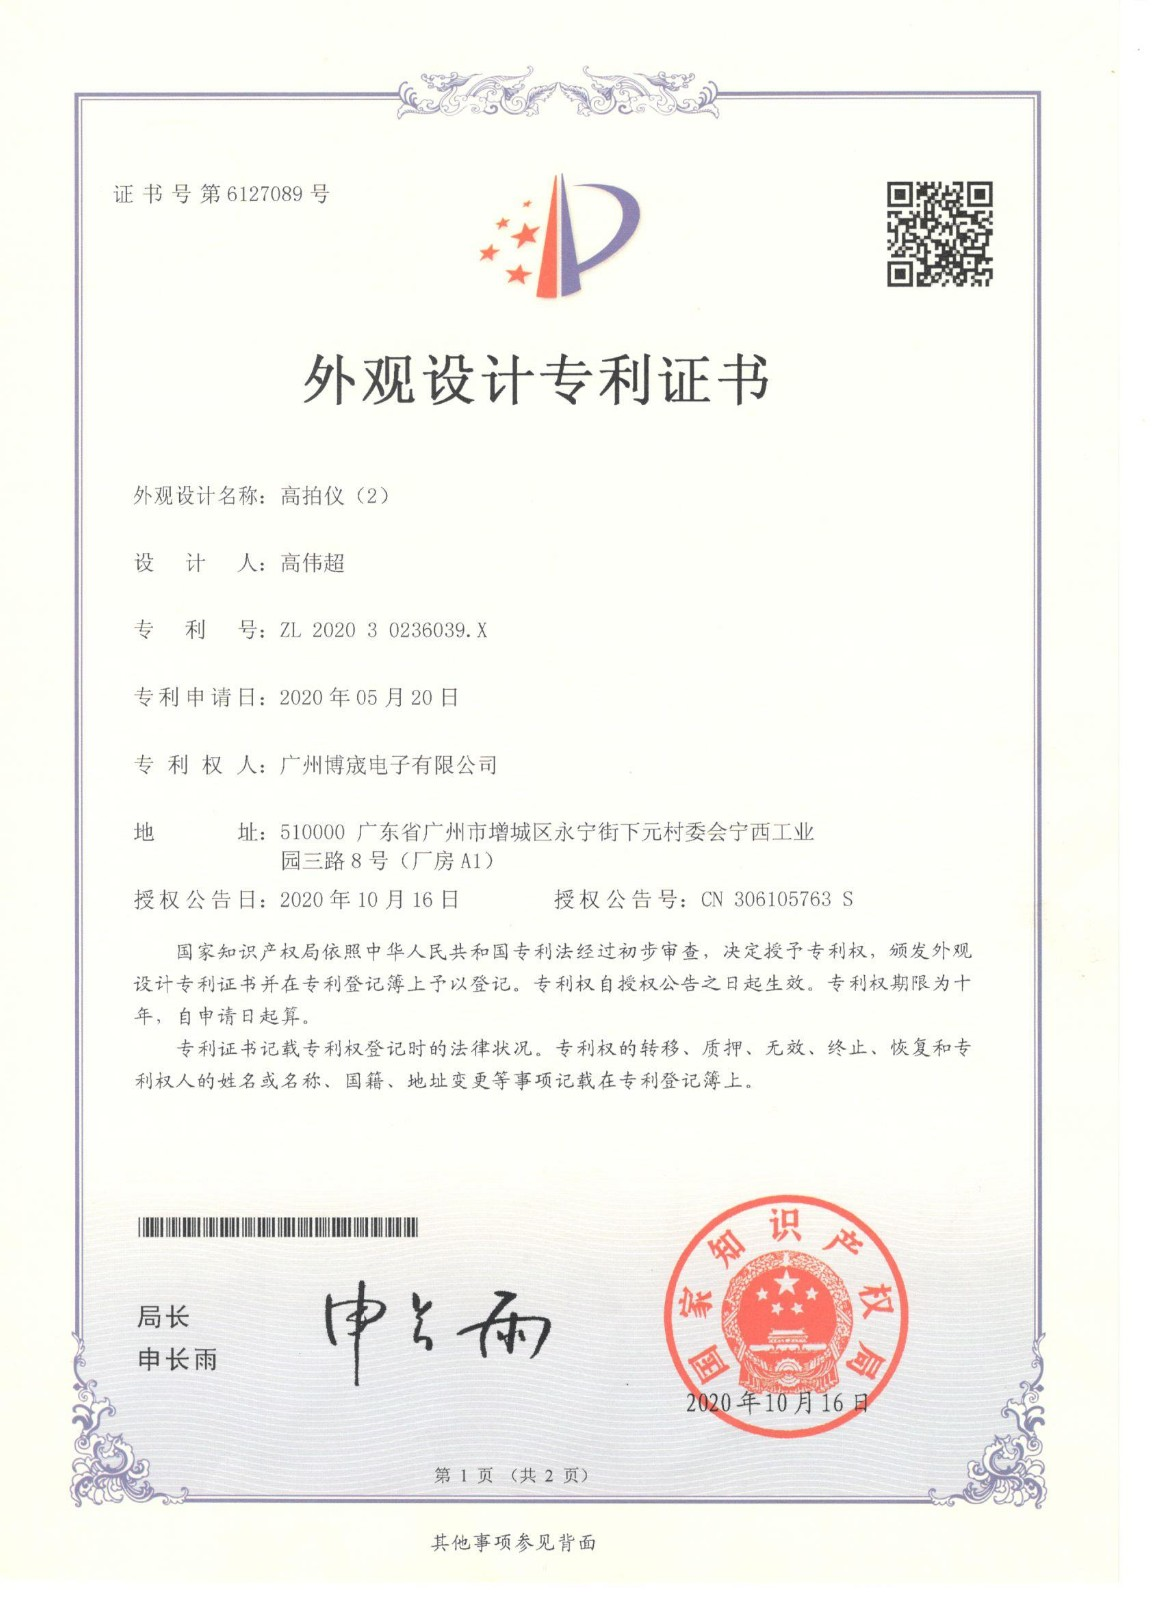 Appearance patent certificate 2